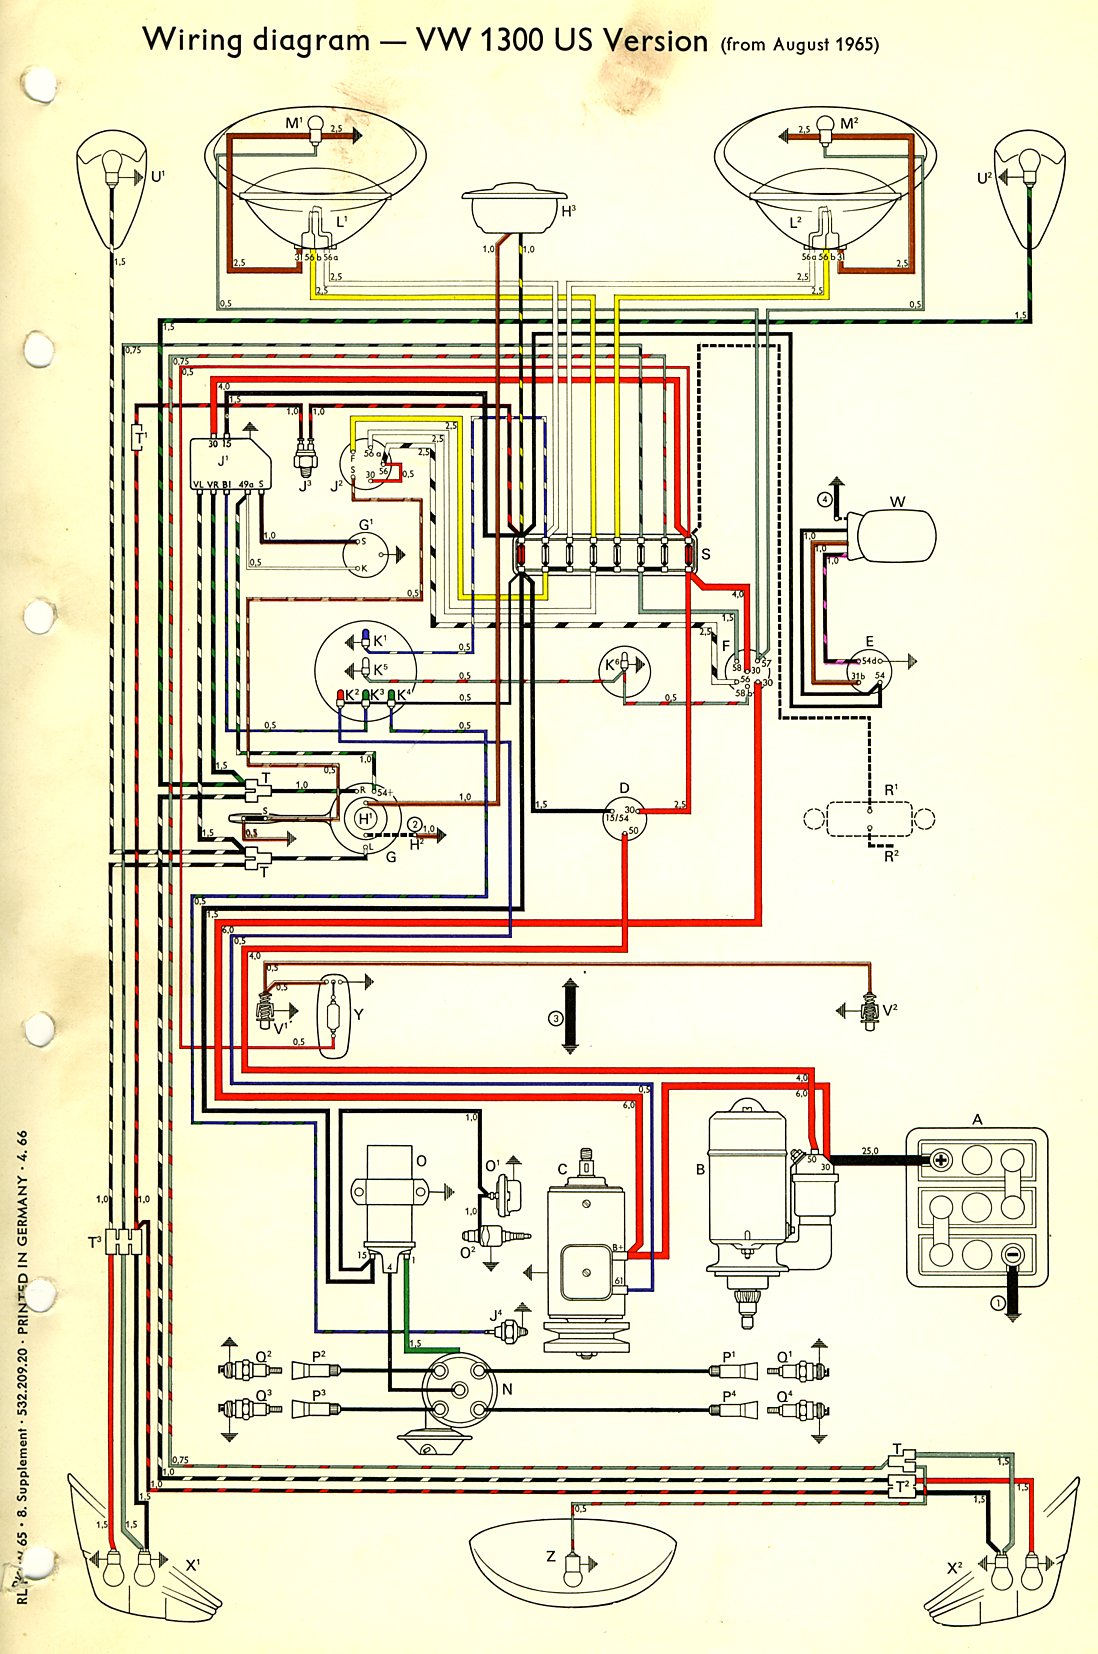 bug_66_USA thesamba com type 1 wiring diagrams 69 vw wiring diagram at readyjetset.co